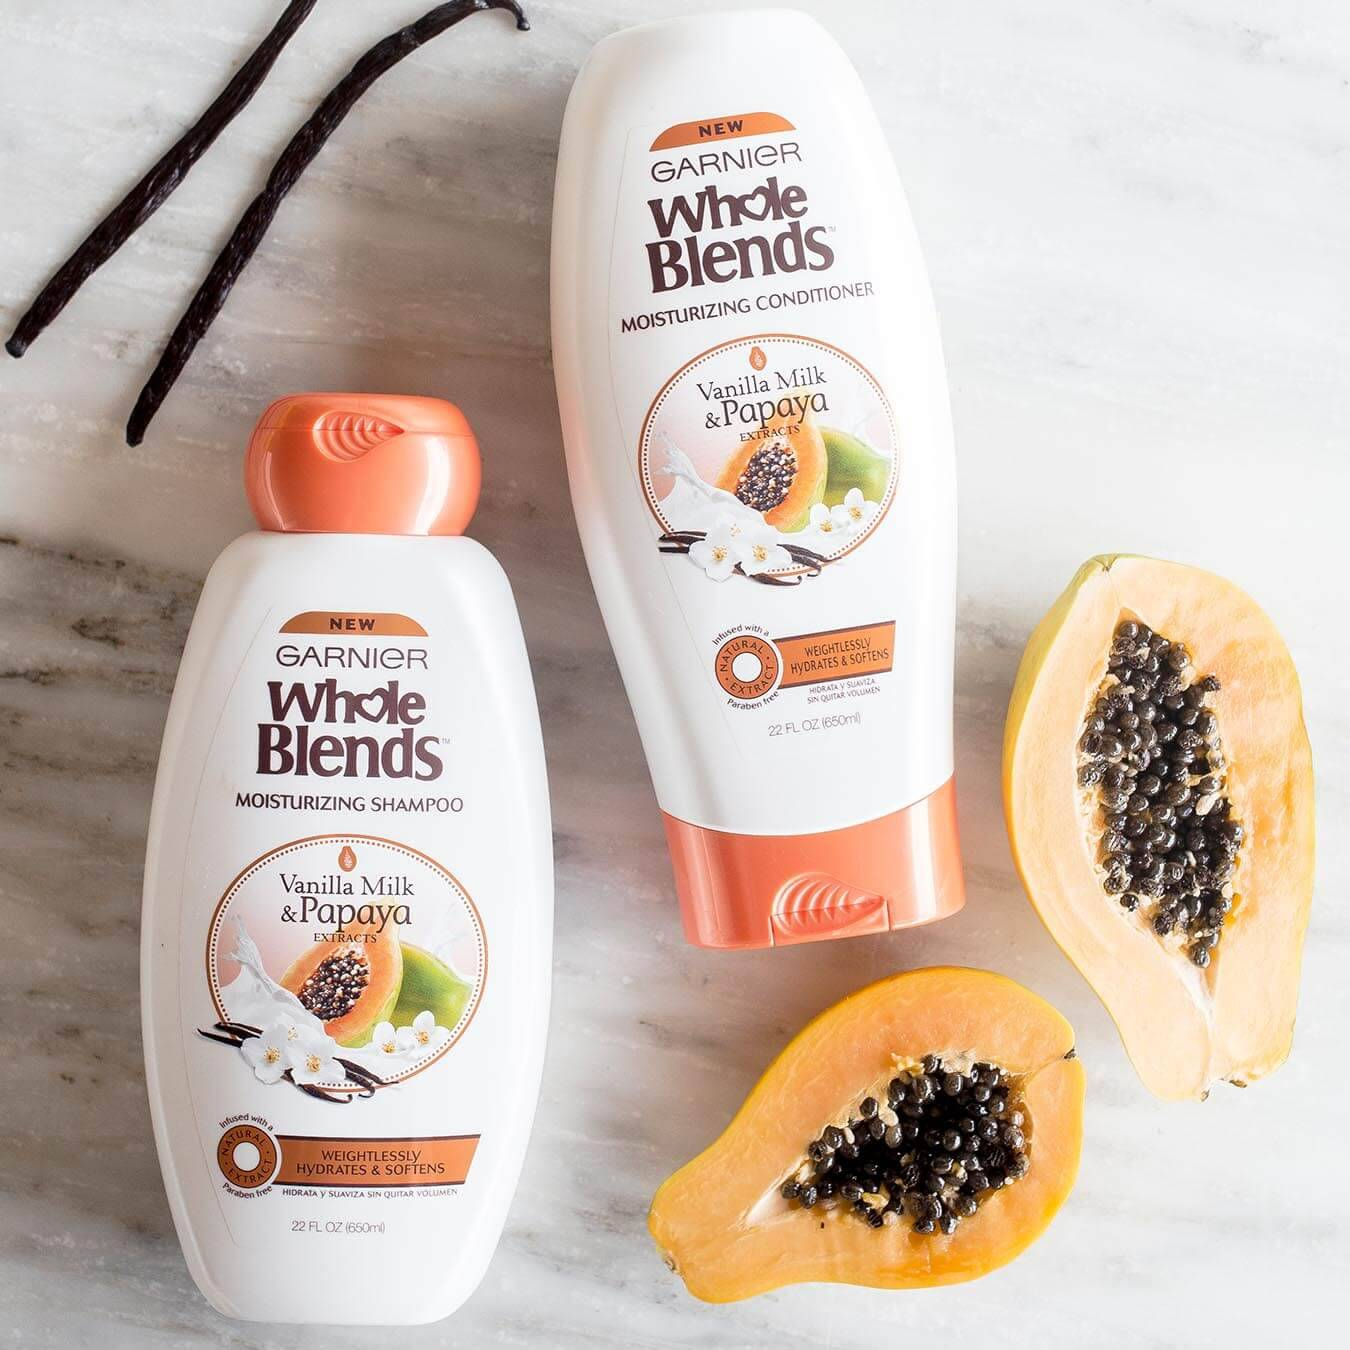 Whole Blends Vanilla Milk and Papaya Moisturizing Shampoo and Vanilla Milk and Papaya Moisturizing Conditioner on white marble next to a halved papaya and two vanilla beans.